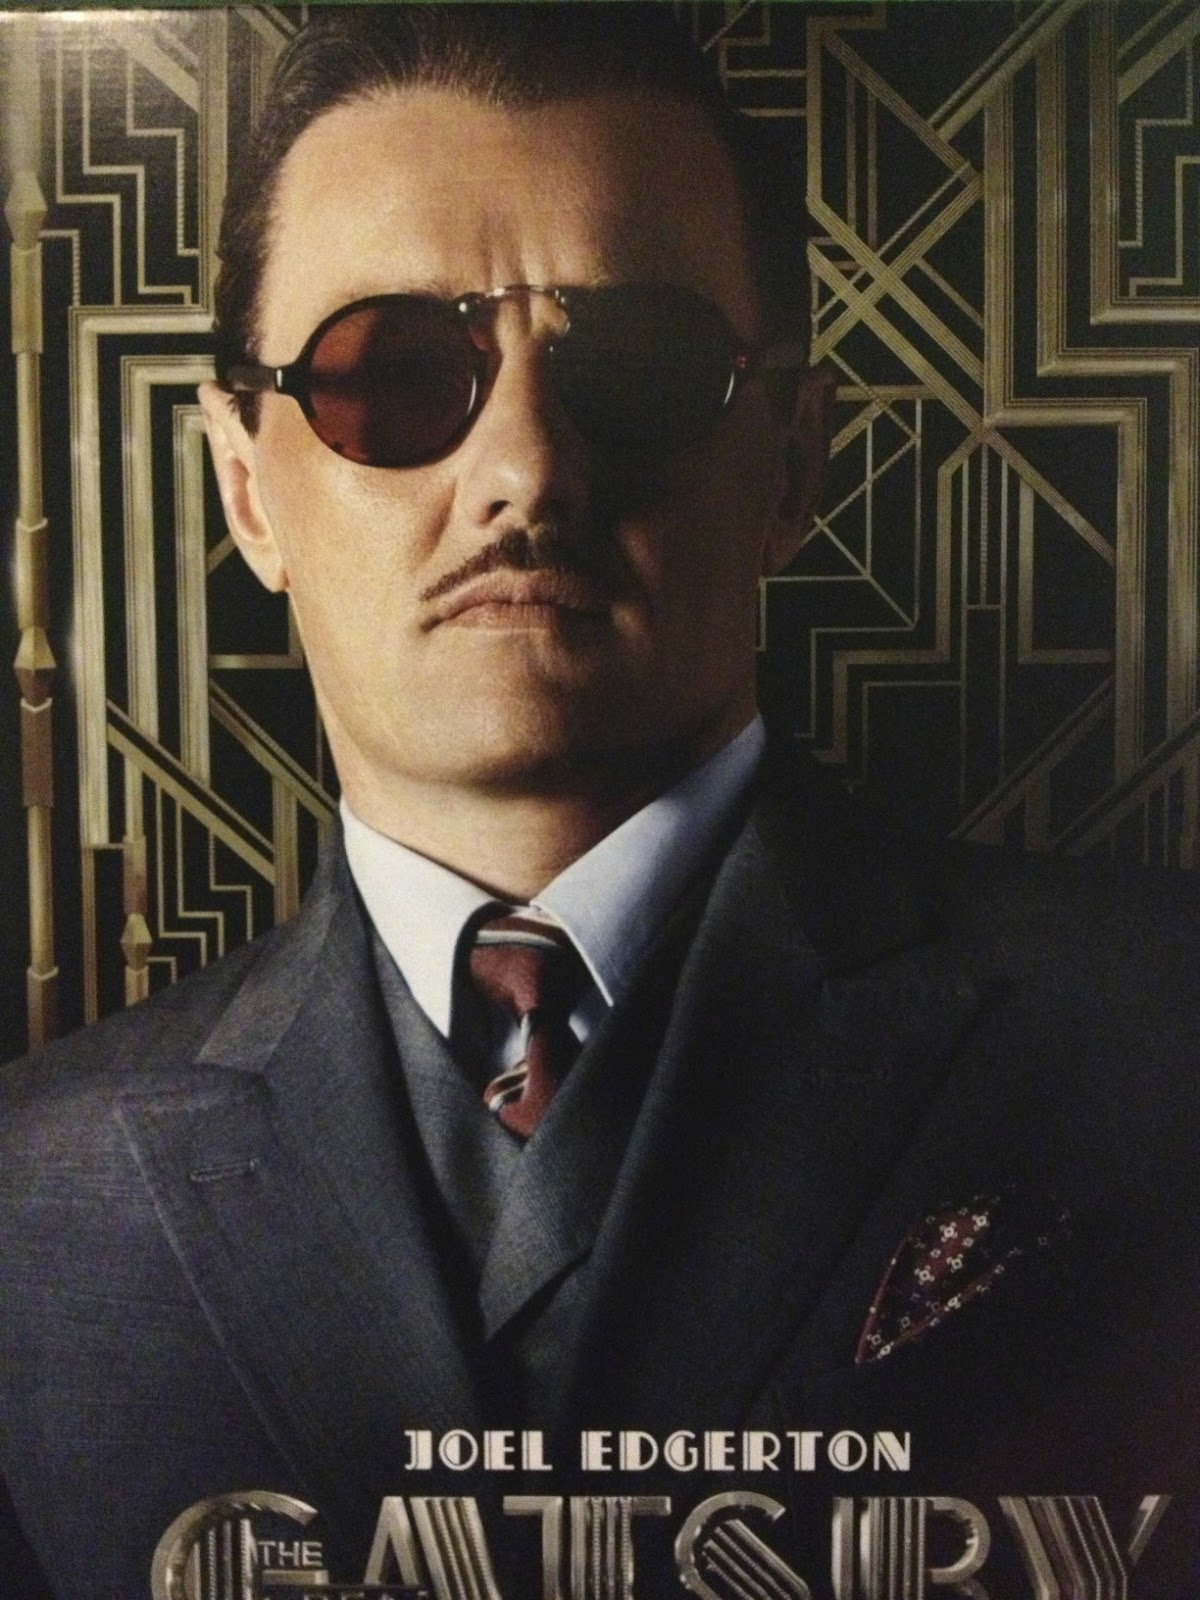 The great gatsby character flaws enhanced